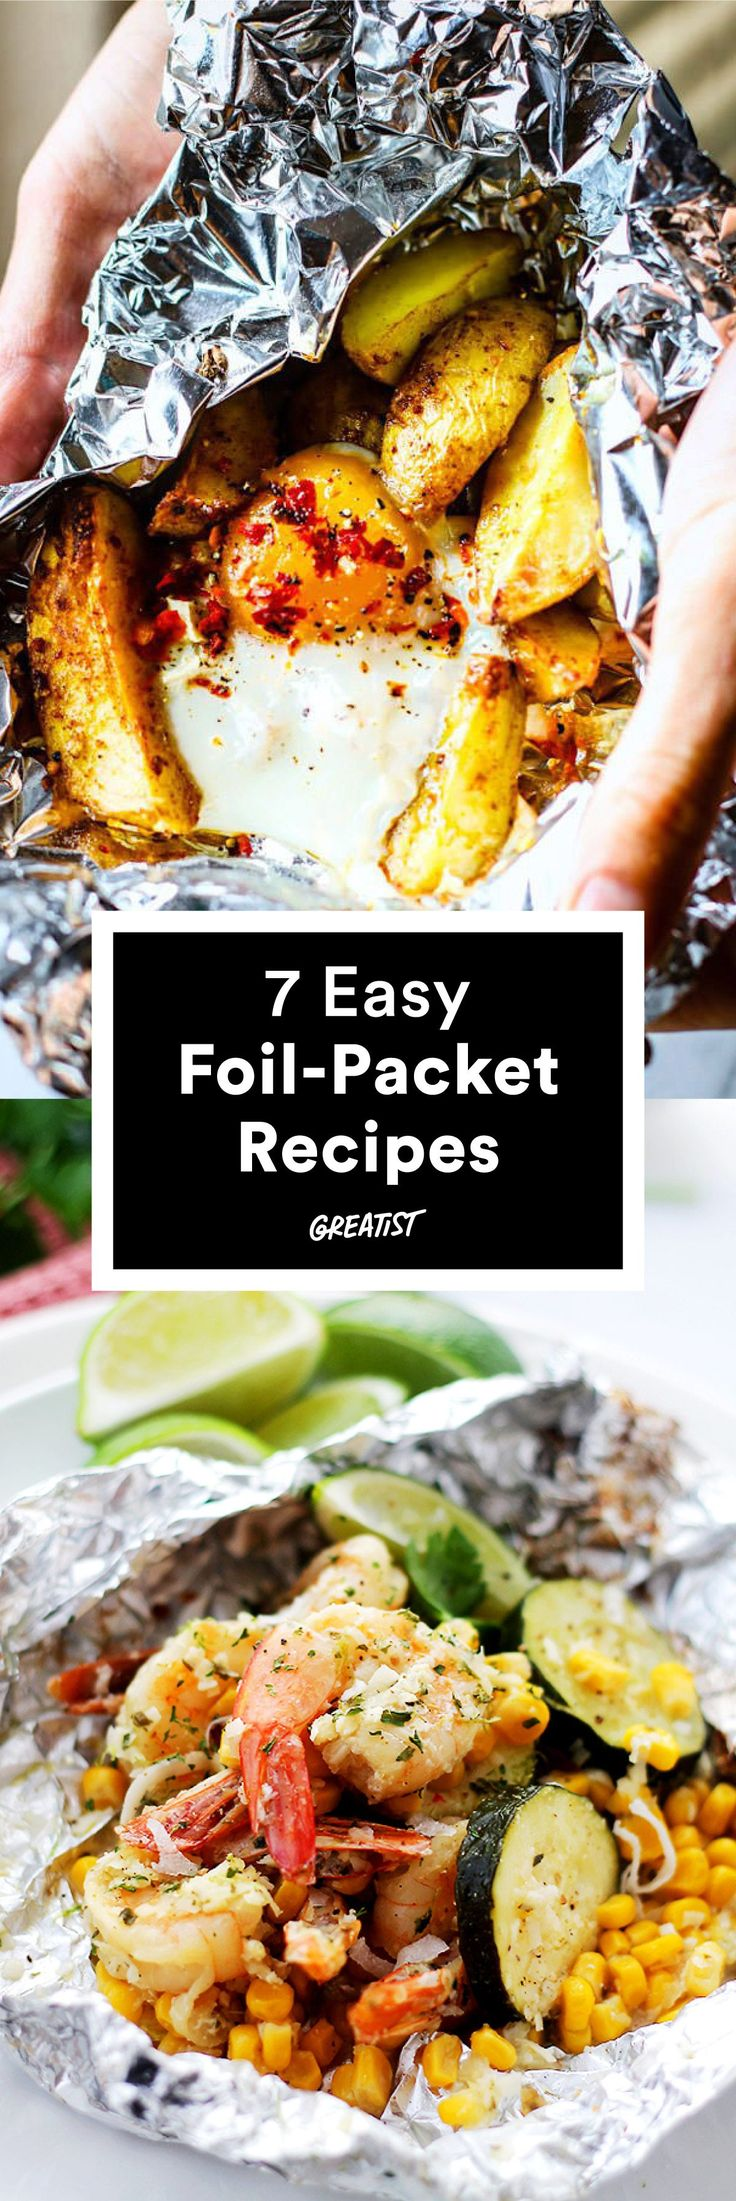 355 Best Foil Packets Images On Pinterest Drink Grilling And Kitchens